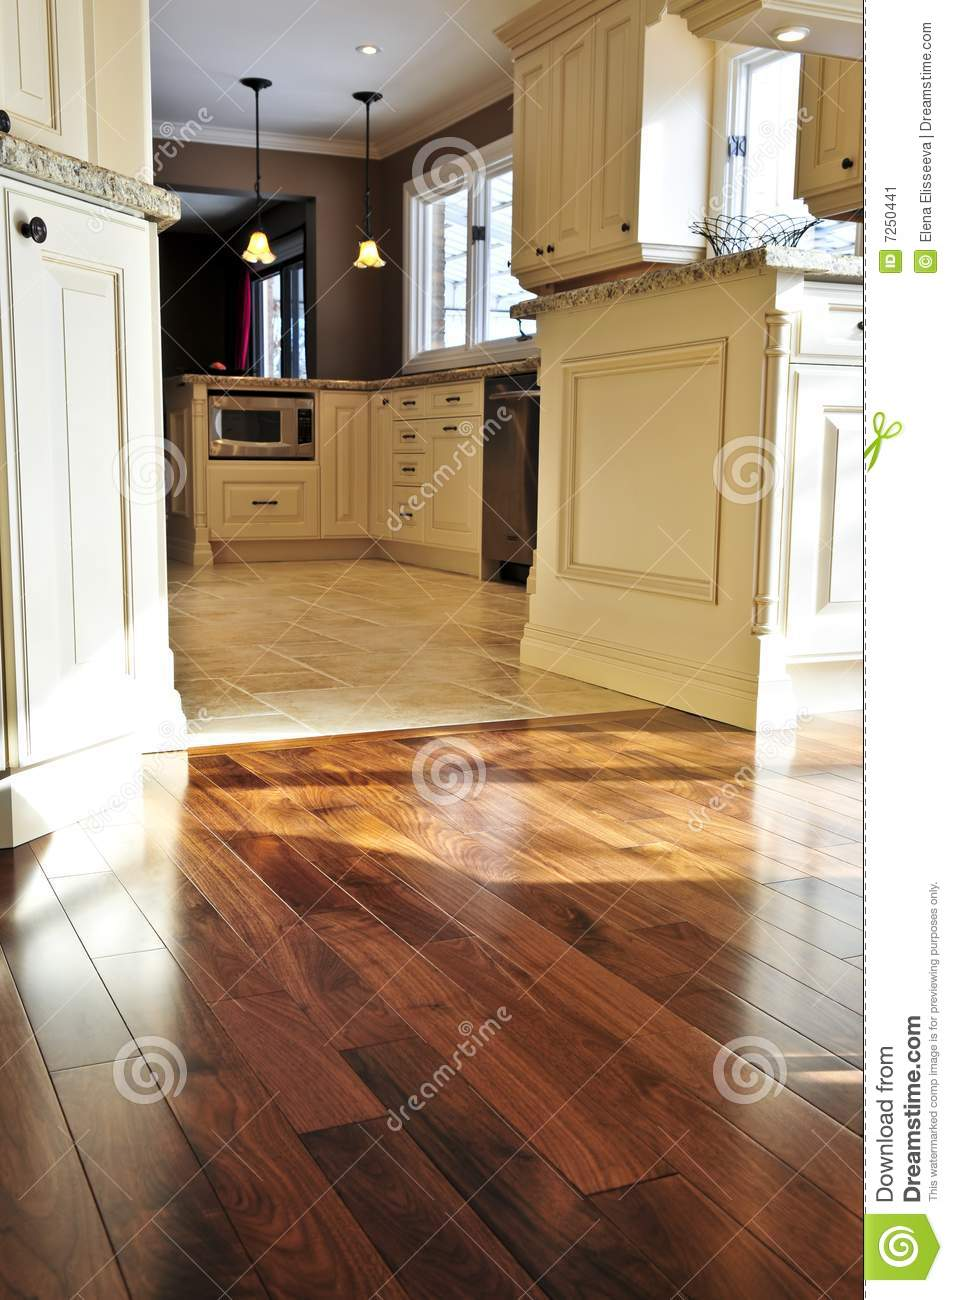 Hardwood And Tile Floor Stock Image Image Of Furnishings